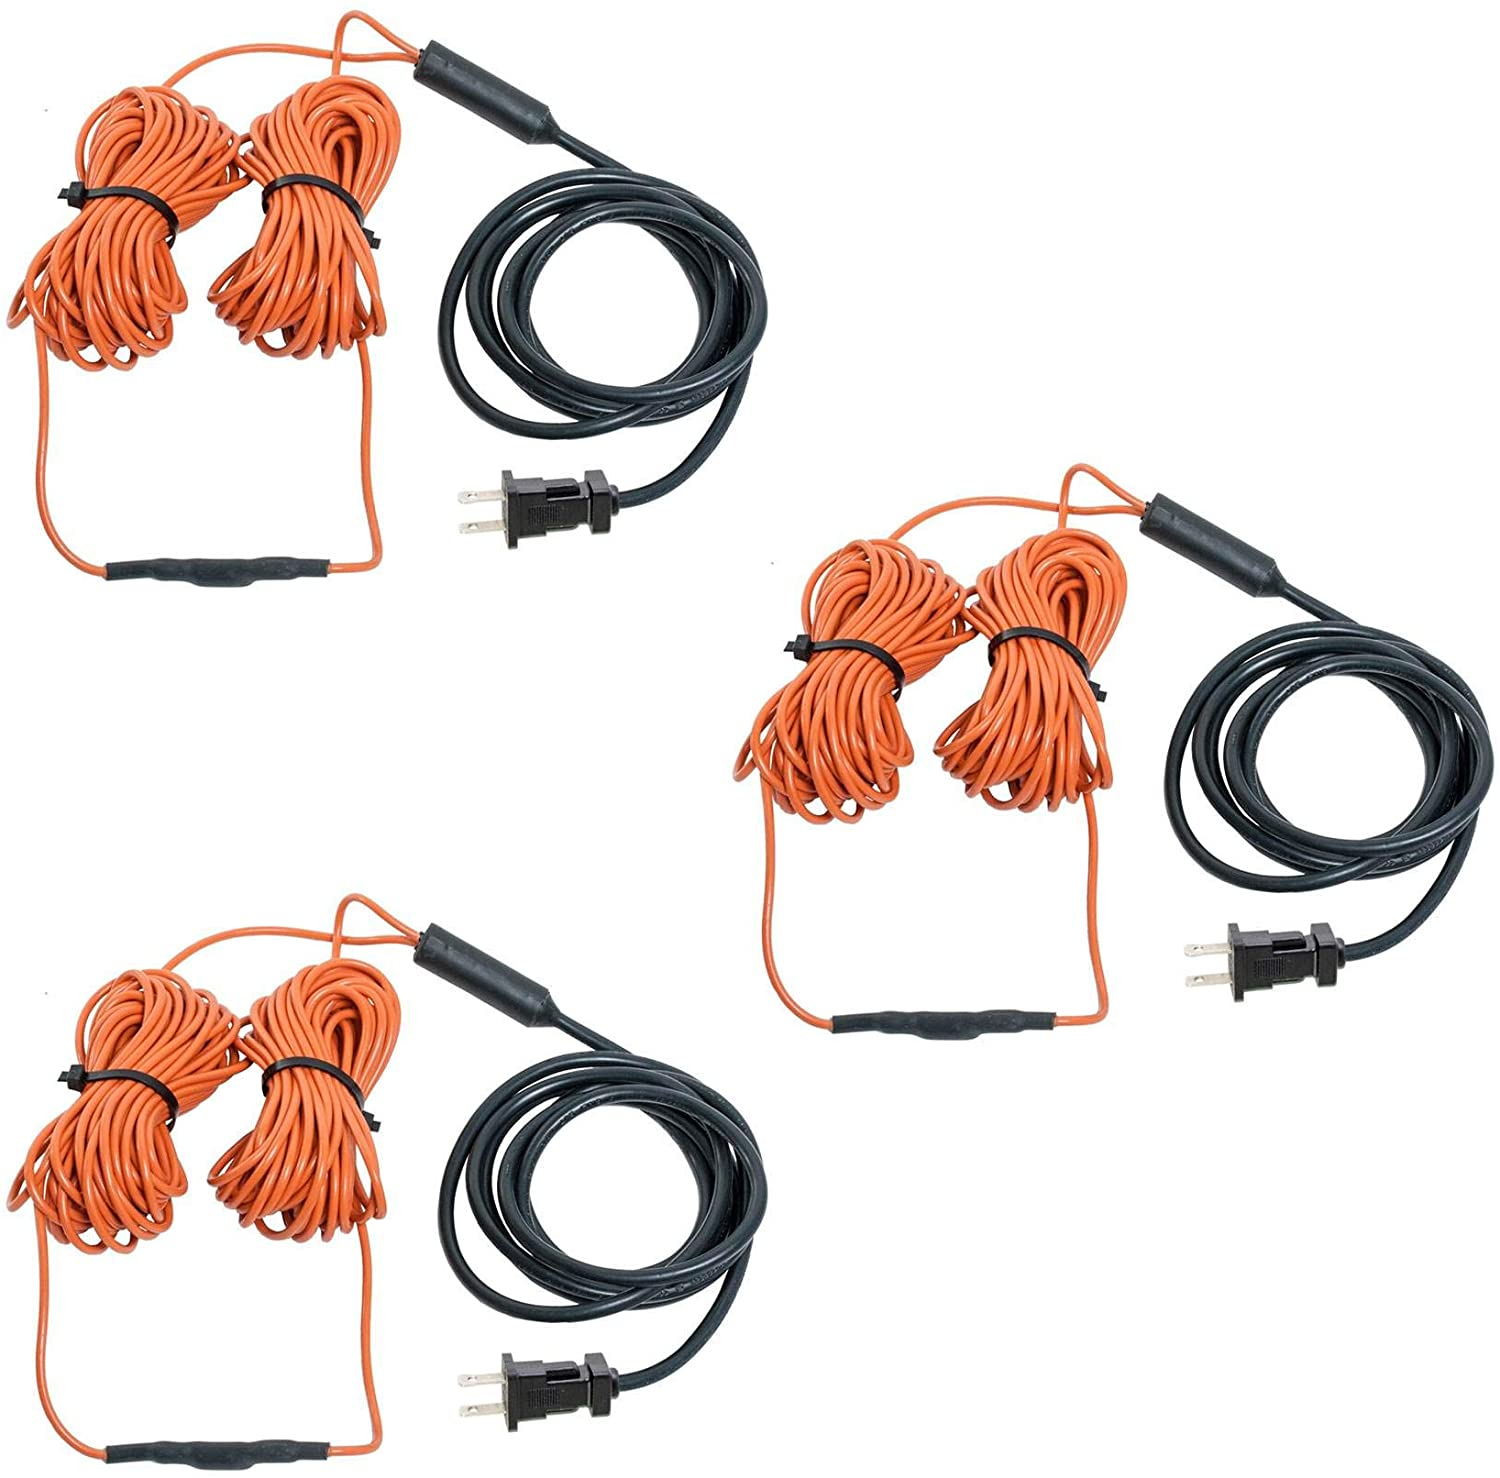 48' Heating Cable - Built-in Thermostat, 3 Pack